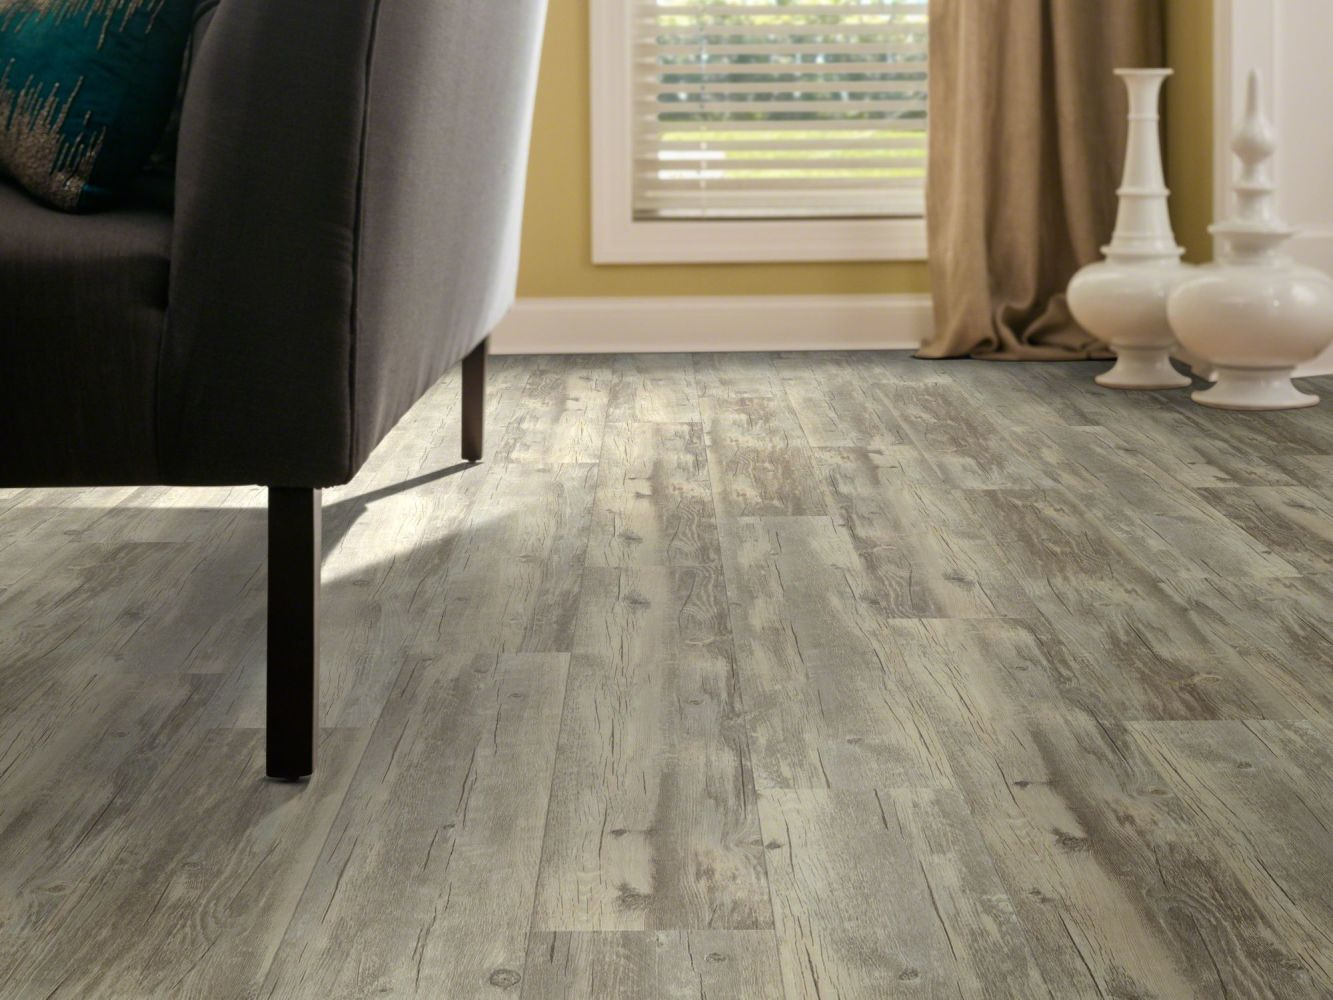 Shaw Floors Resilient Residential Endura 512g Plus Wheat Oak 00507_0802V